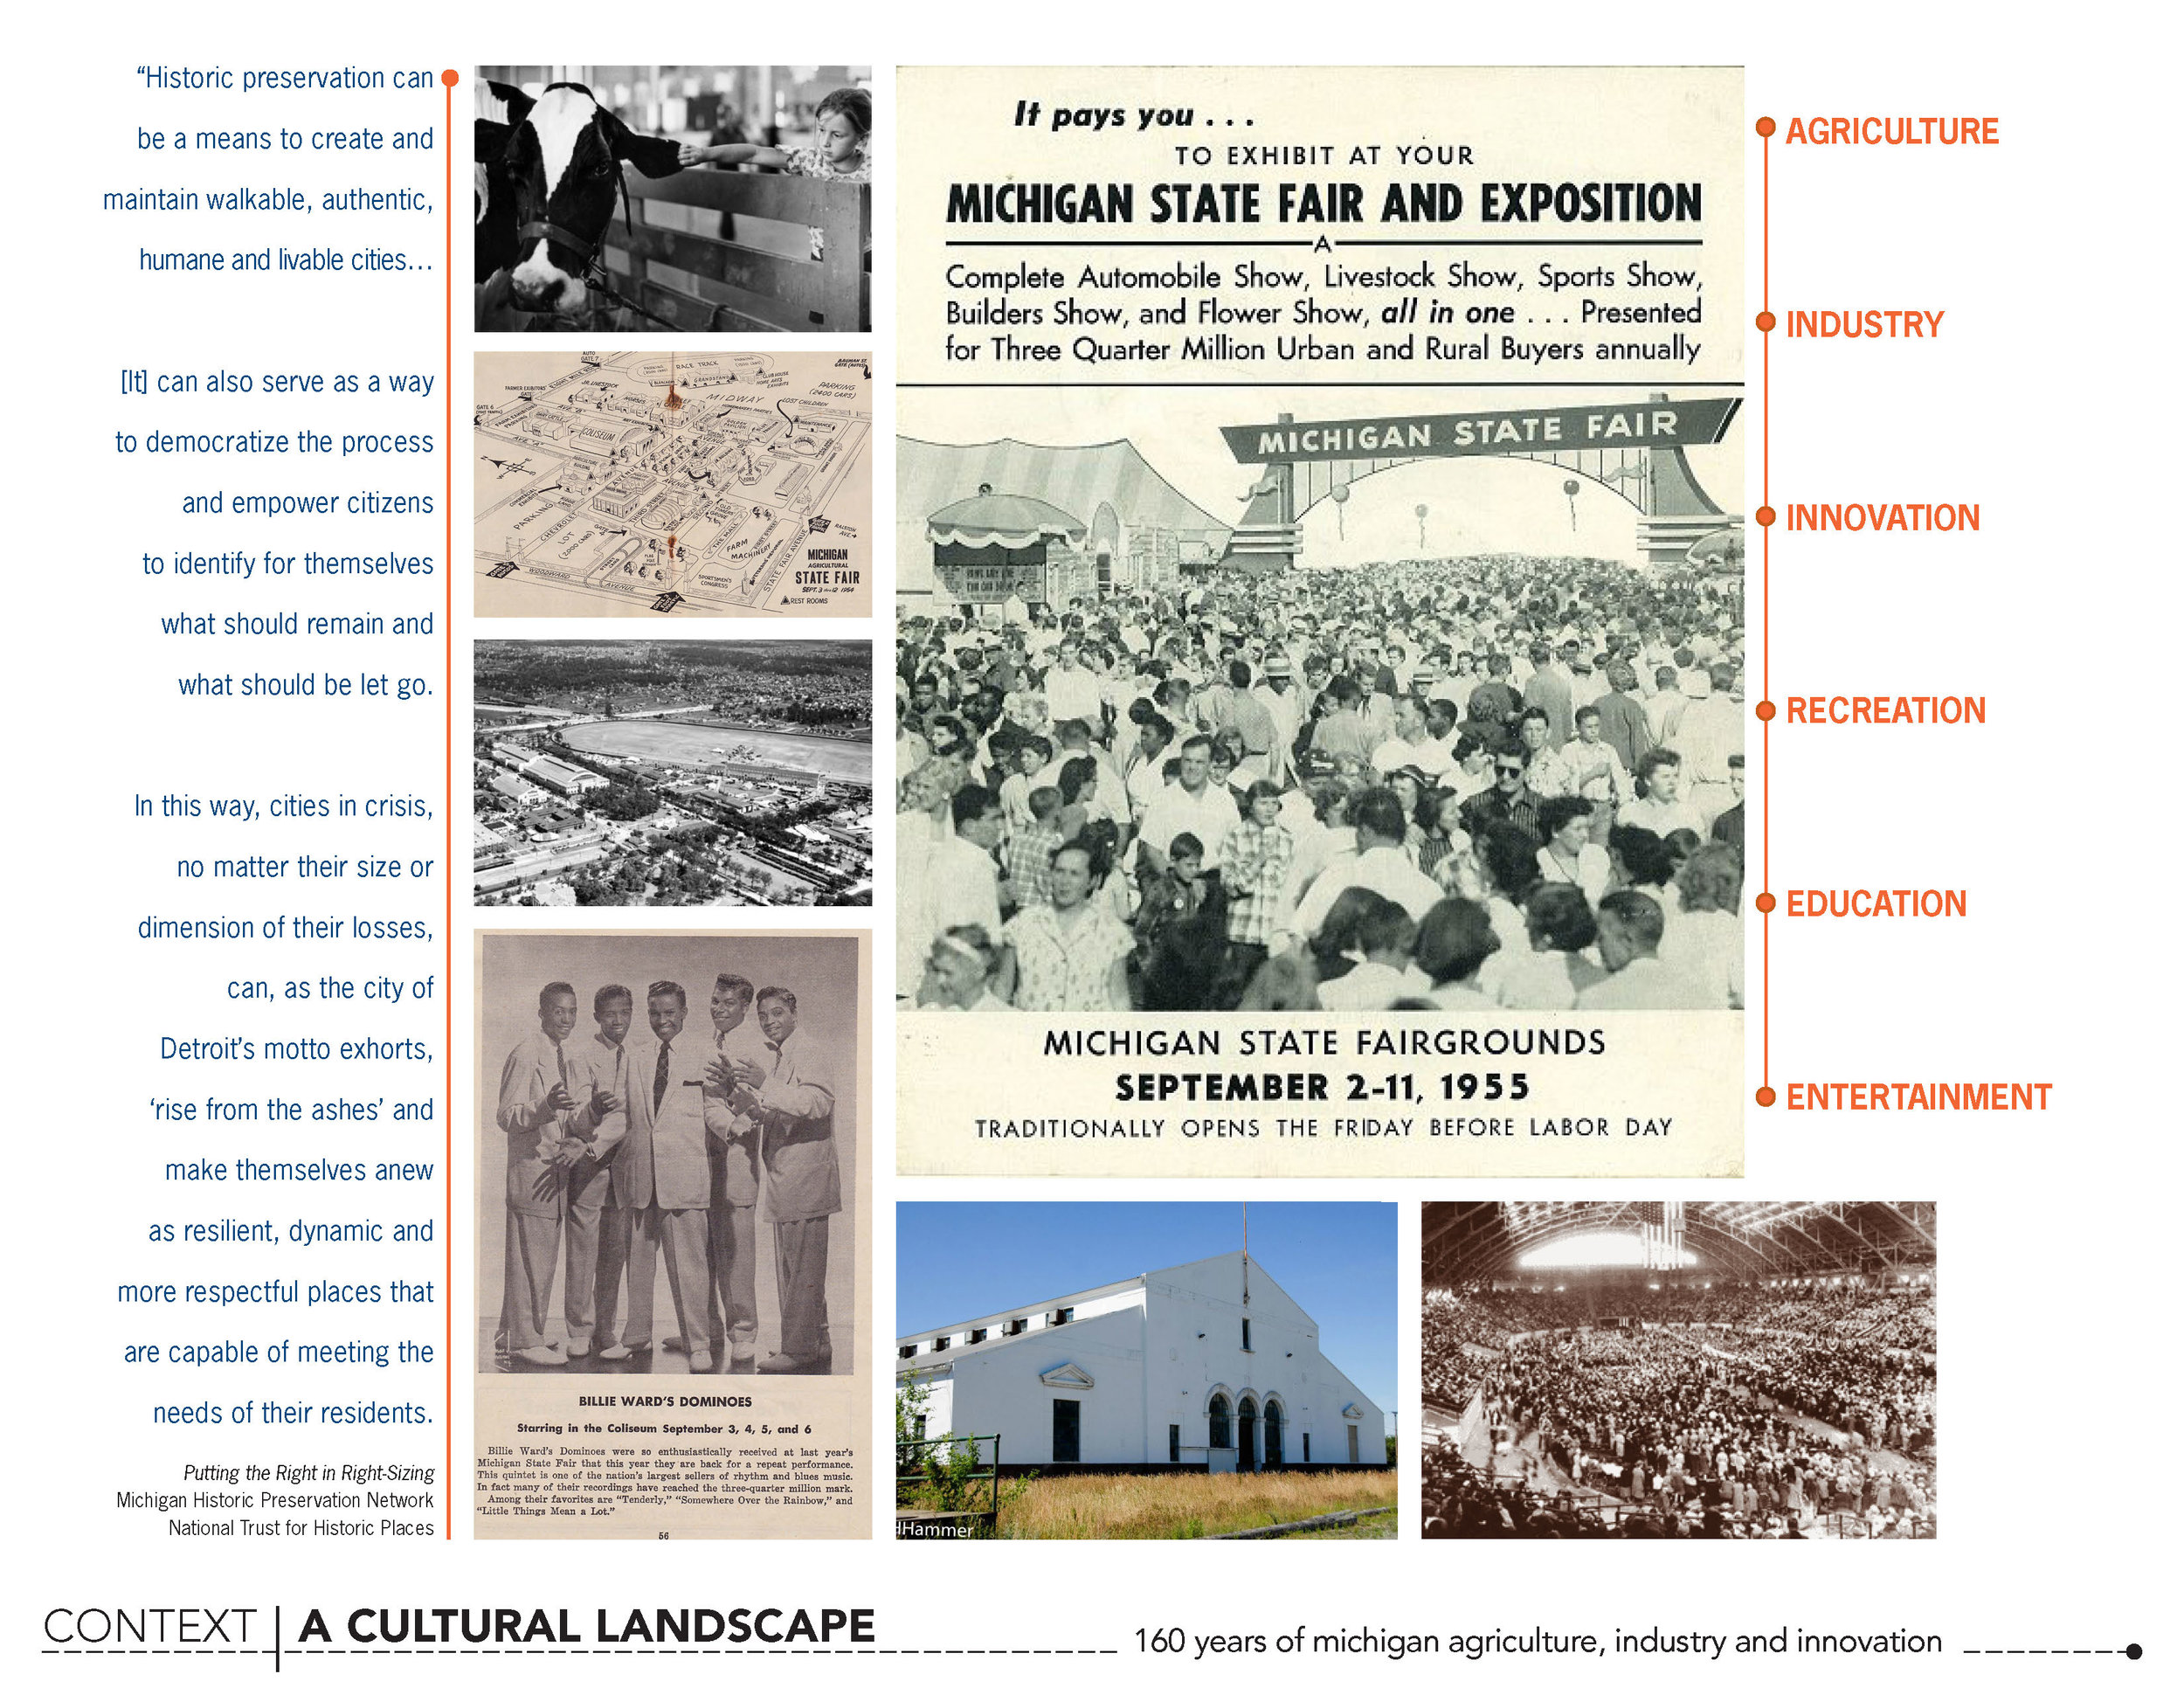 Cultural Landscape: 160 years of Michigan agriculture, industry and innovation